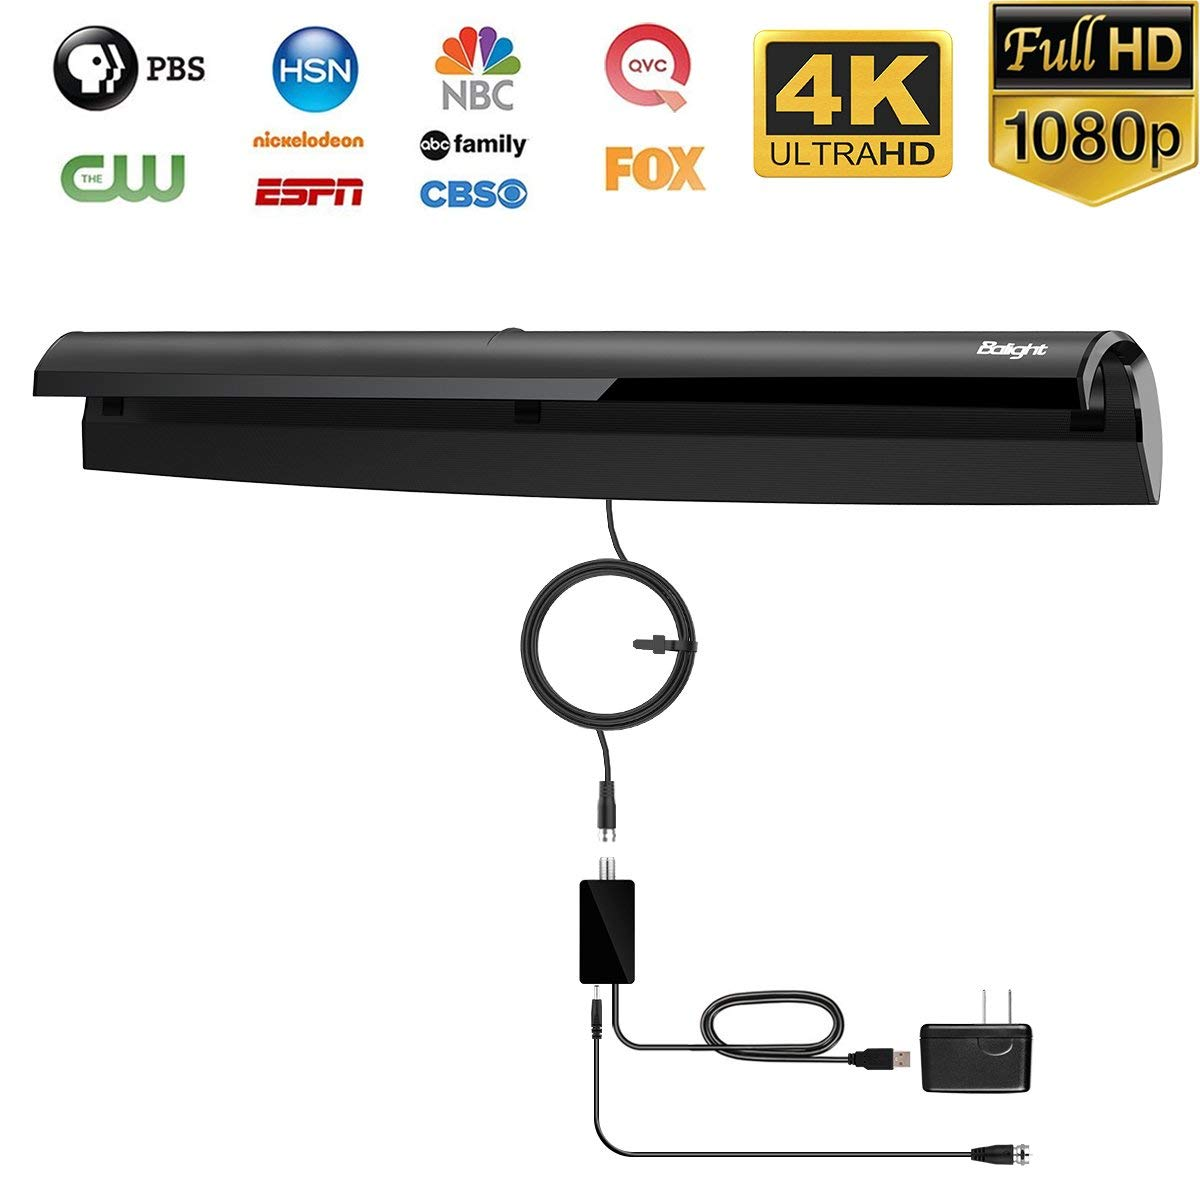 Indoor Digital HDTV Antenna, Balight Amplified TV Antenna Upgrated With 50-80 Miles Range, 1080P HD VHF UHF Free Channel Broadcast 10FT Coax Cable